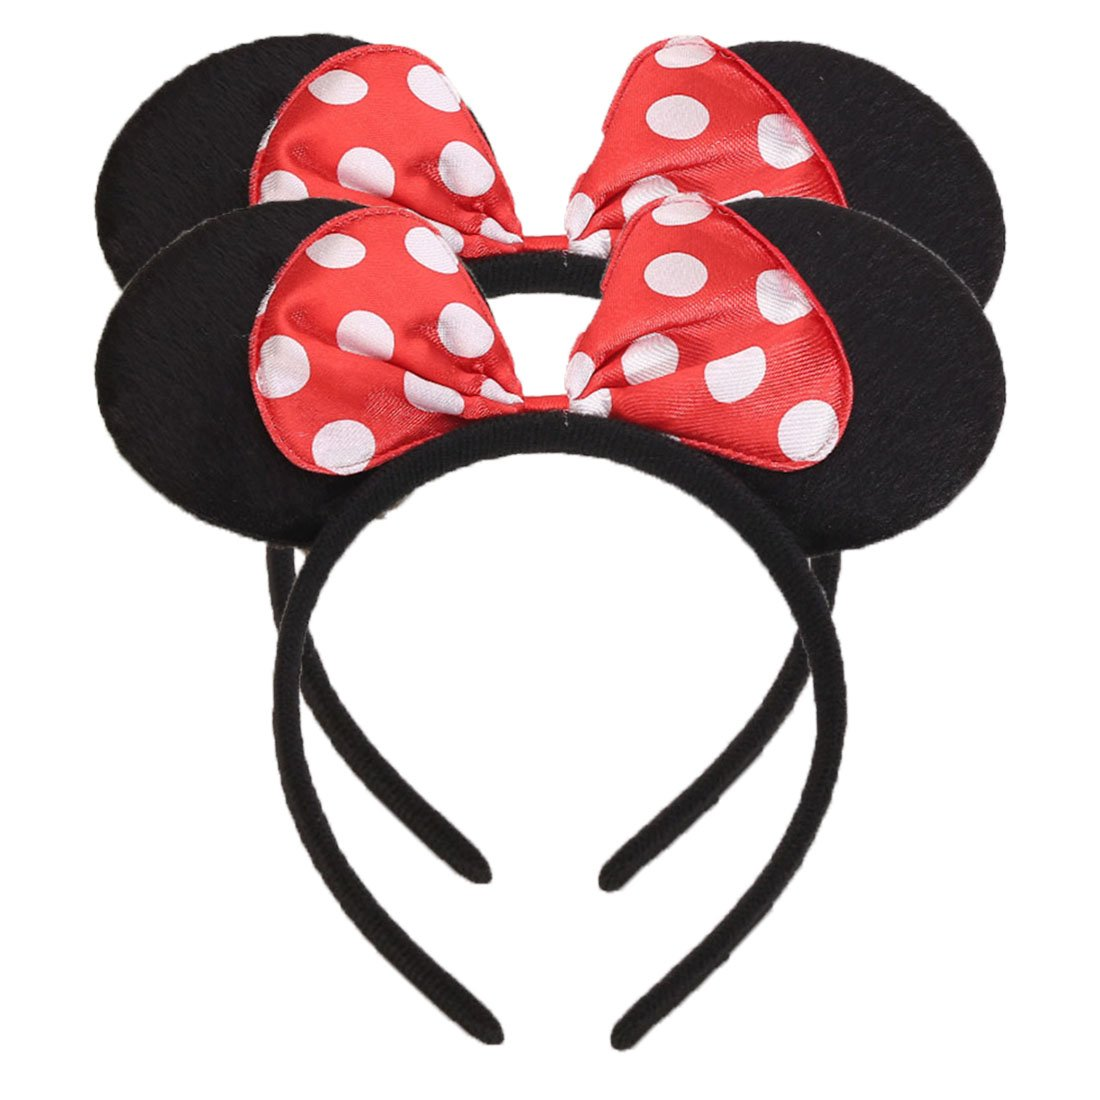 Set of 2 Mickey Minnie Mouse Ears Headband Boys Girls Birthday Party Mom Hairs Accessories Baby Shower Headwear Halloween Party Decorations Costume Deluxe Fabric Ears with Dots Bow (Red Black) Mabingo